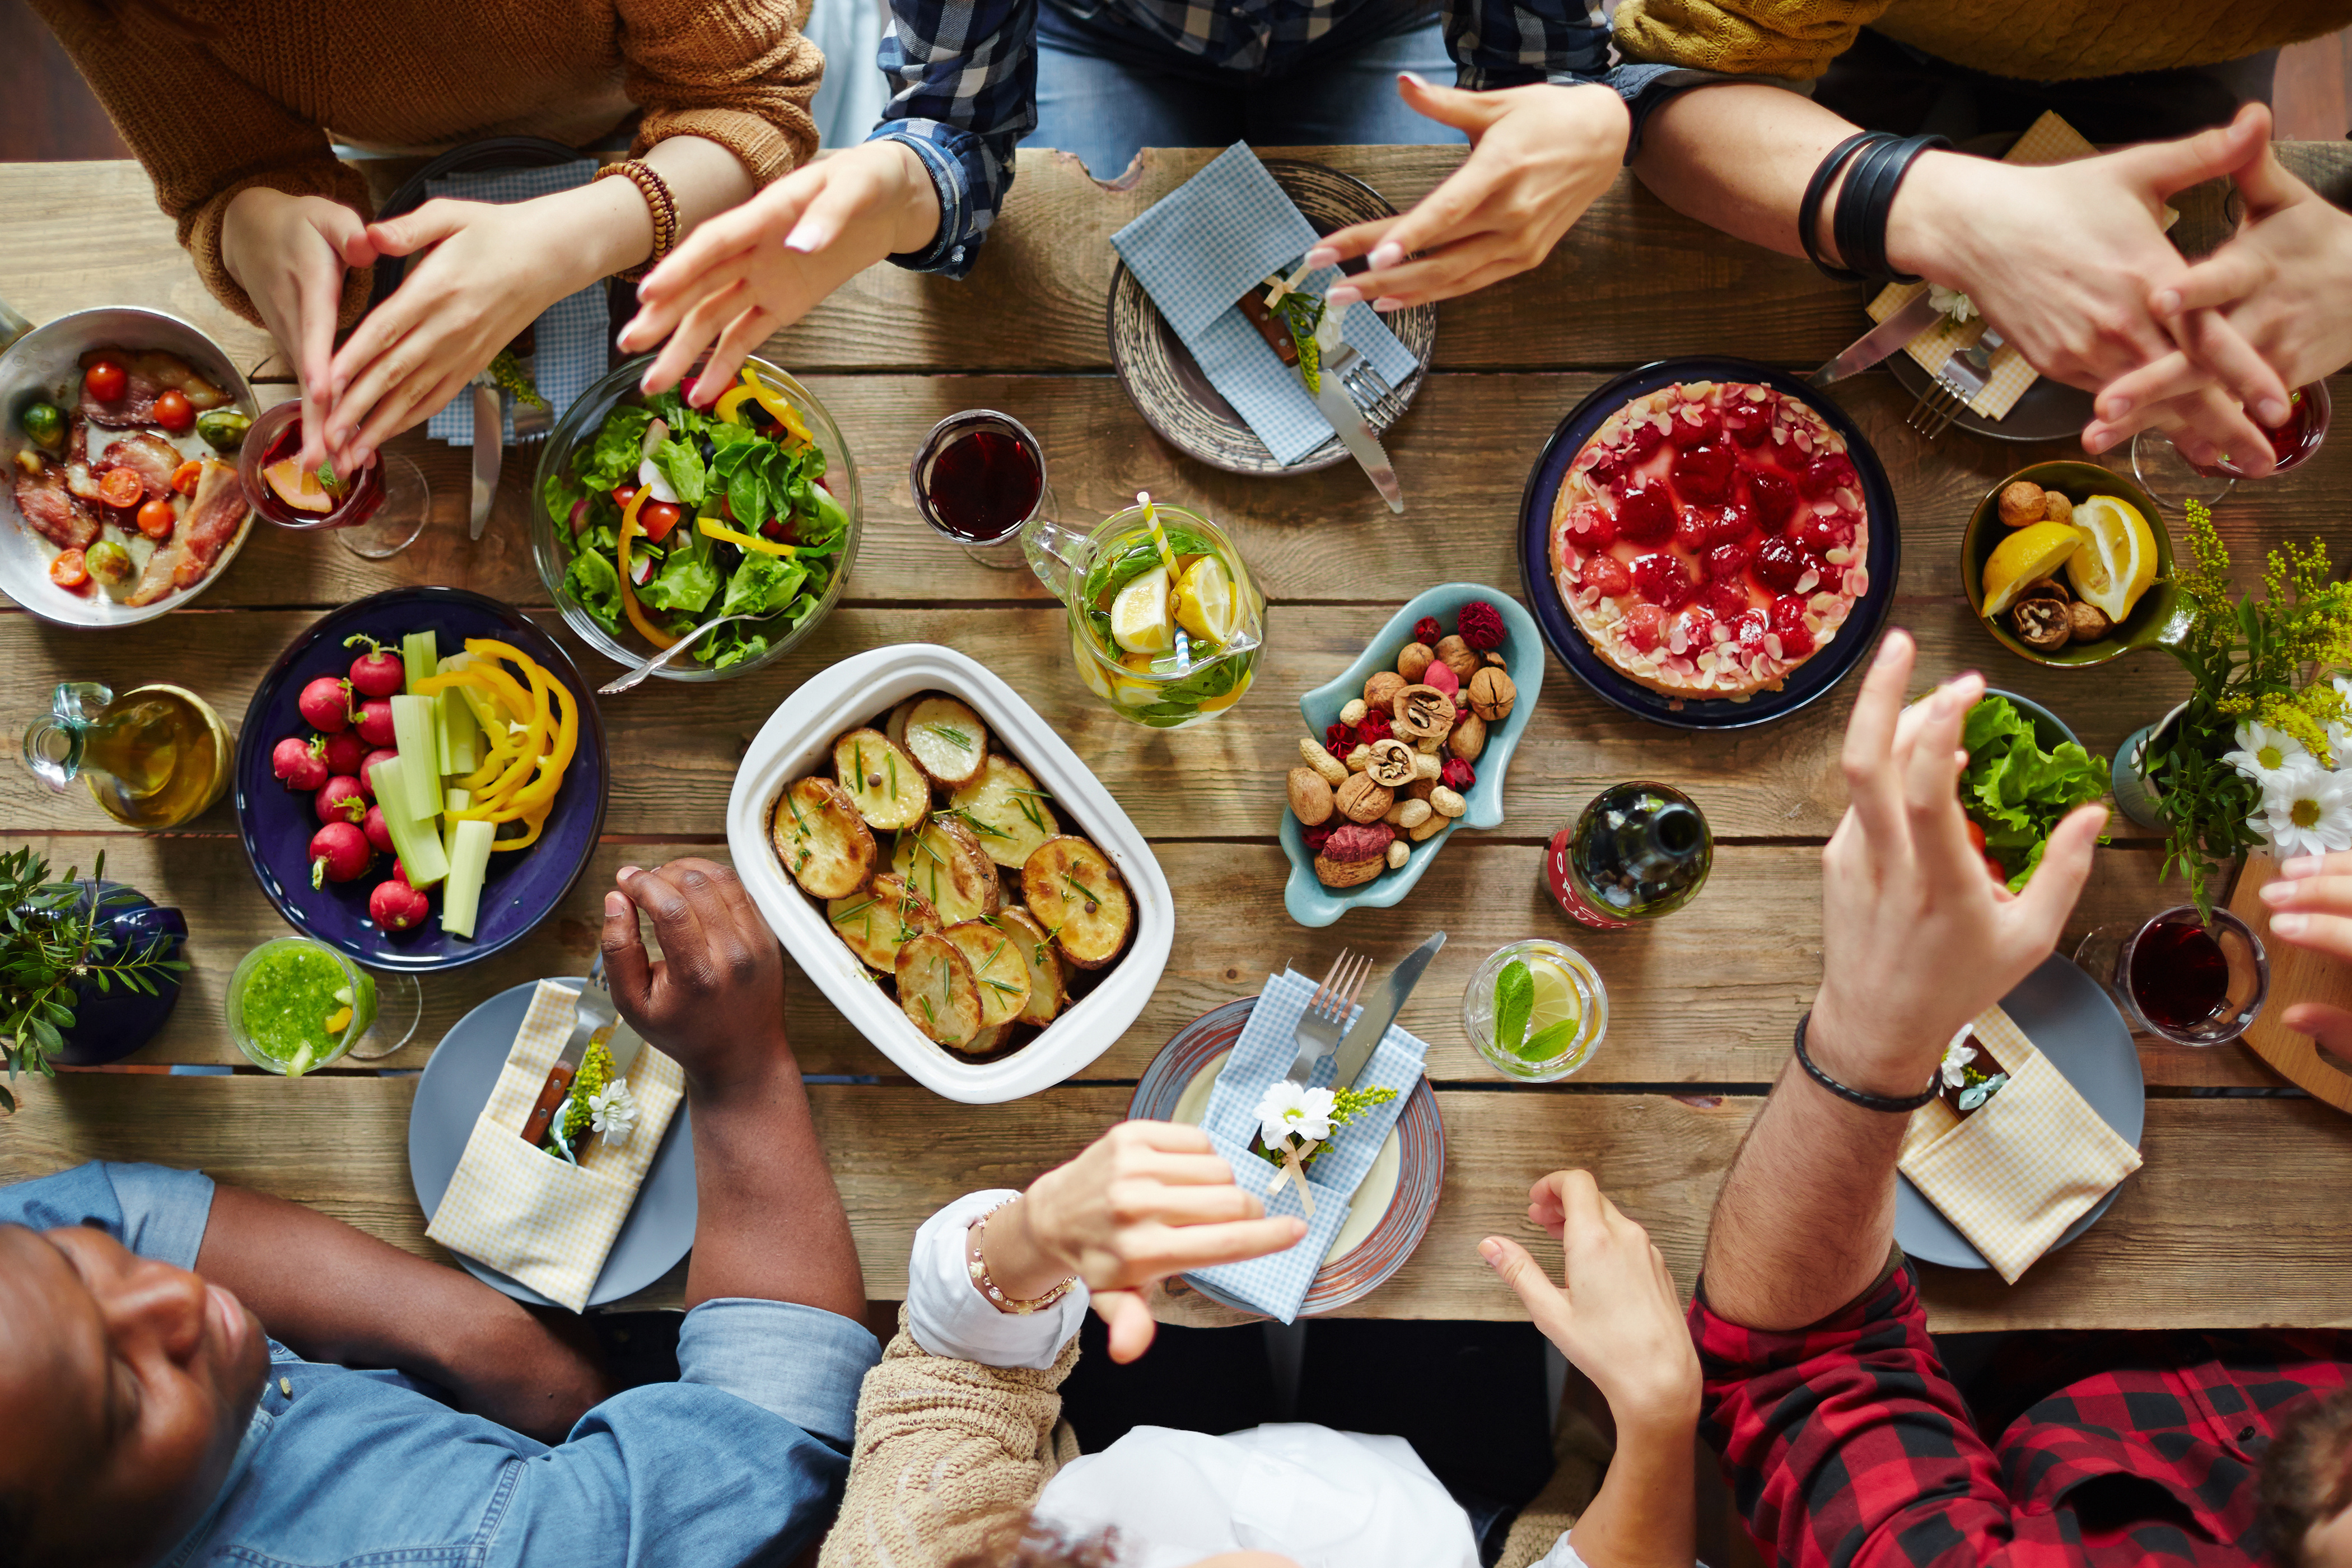 Group of people sitting around a table eating food